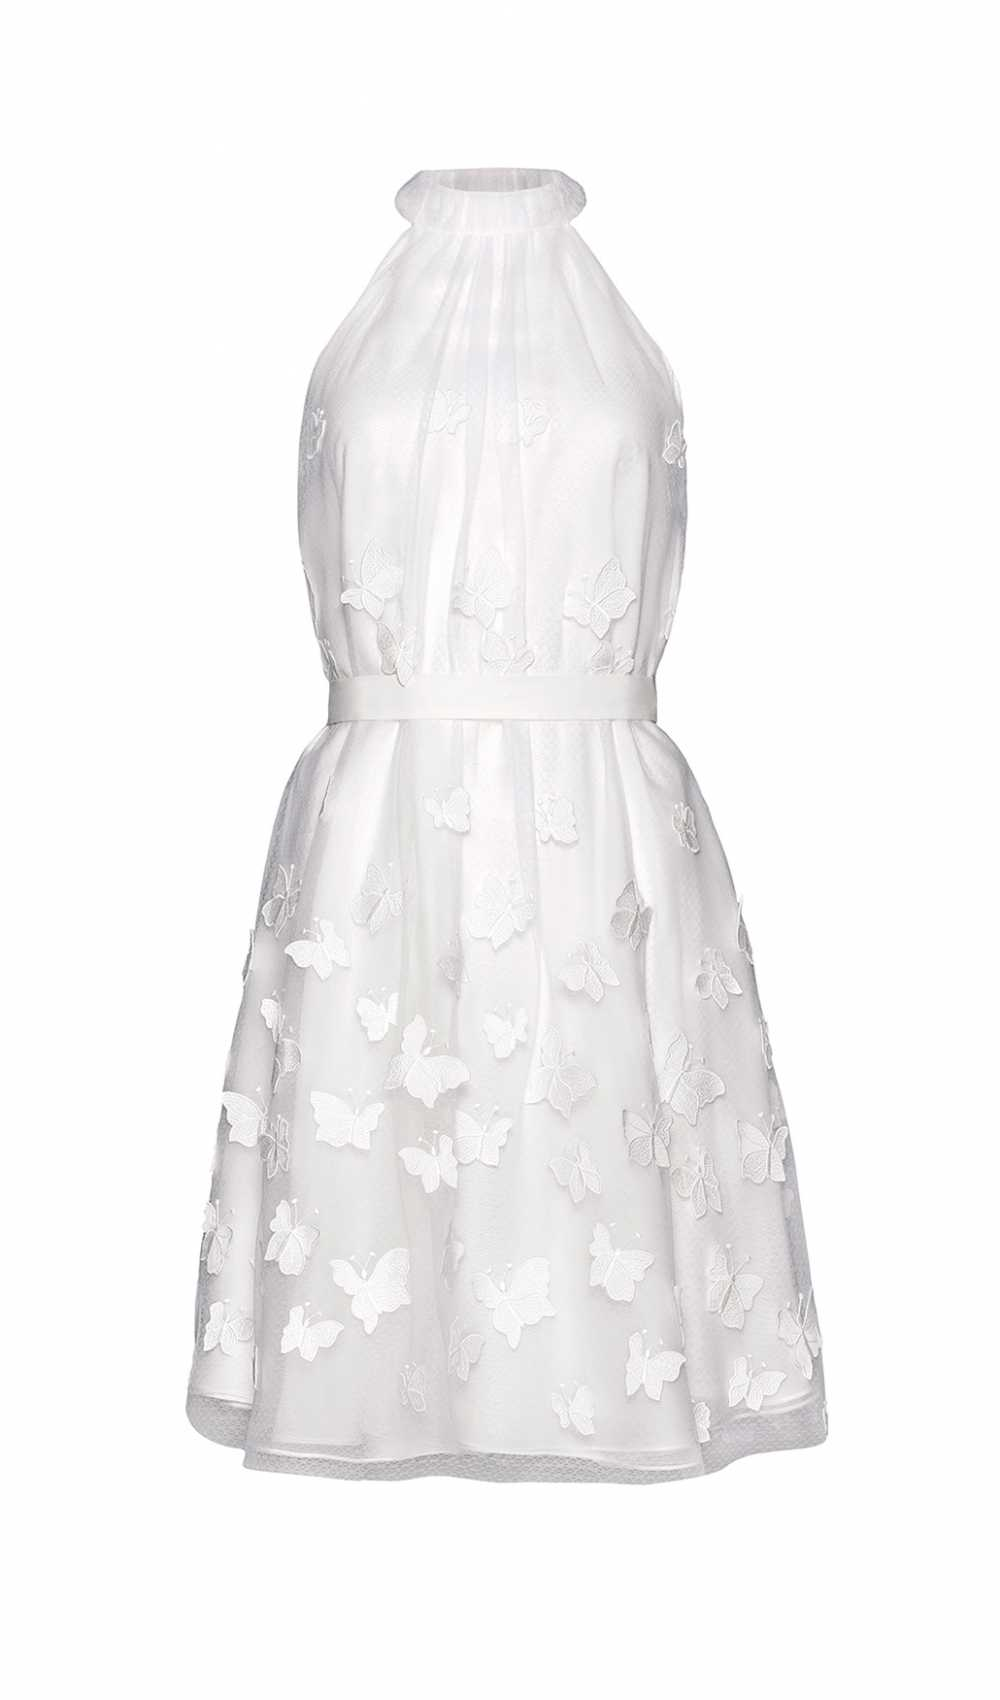 Feminin Wedding Dress Papillon Ophelia Dress by Kaviar Gauche